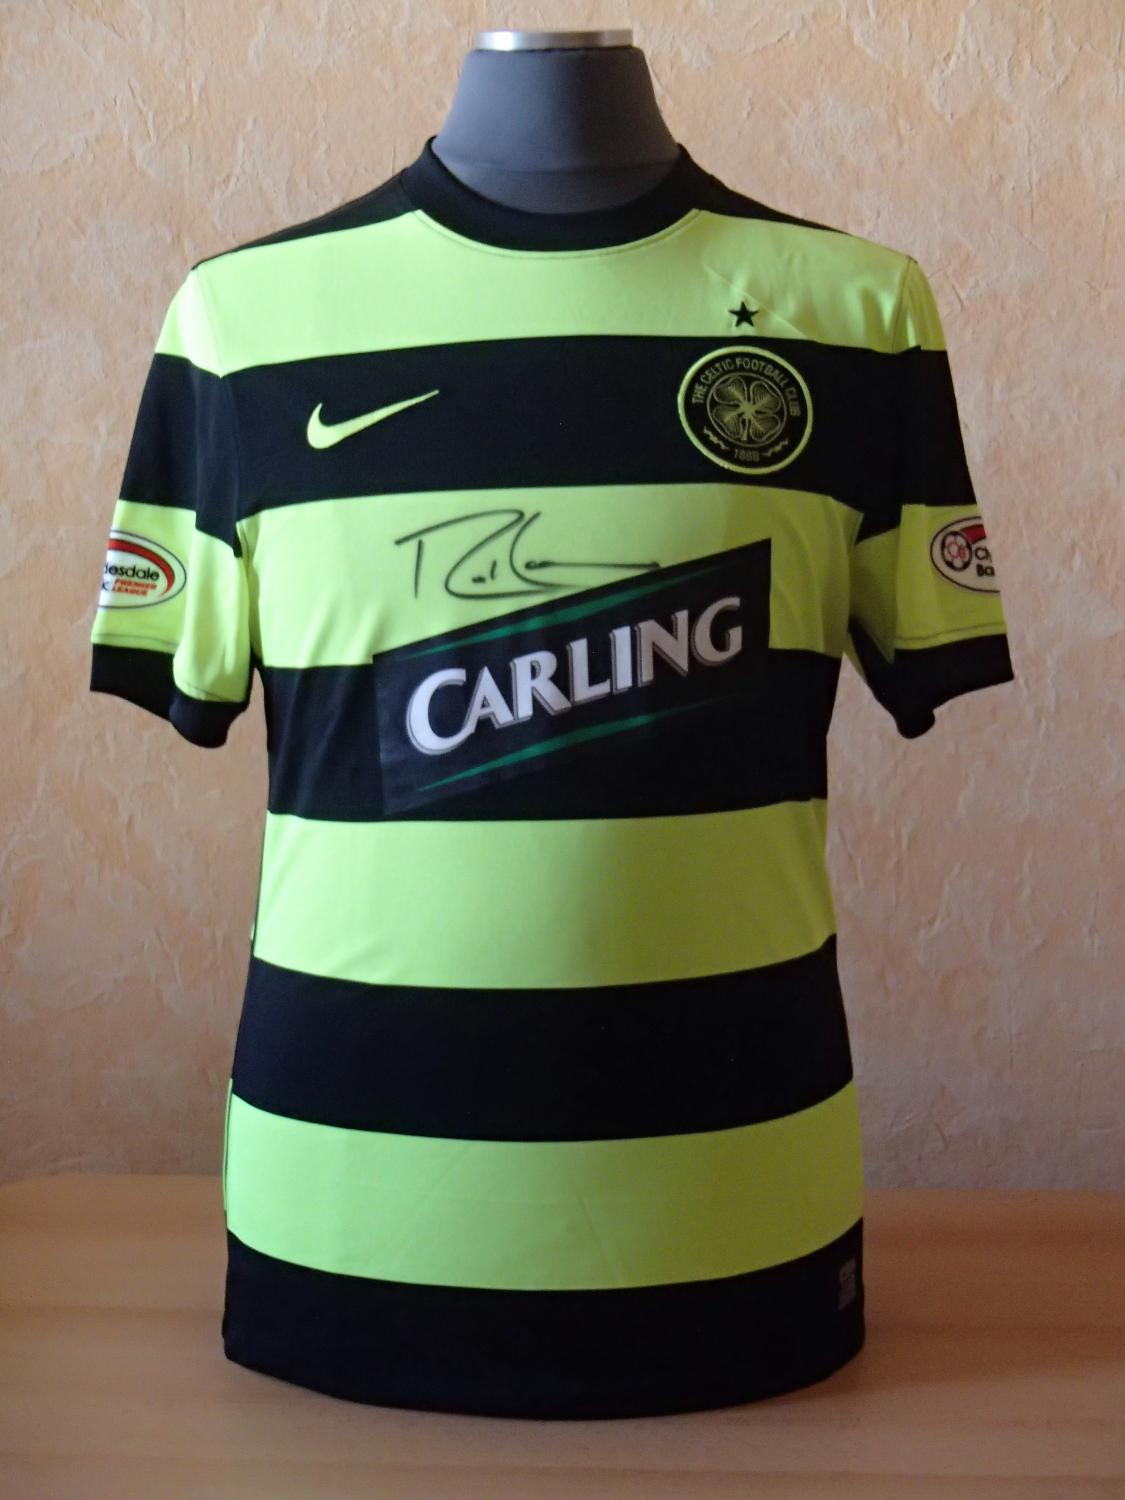 f0cad5e9ea7 Celtic Away Maillot de foot 2009 - 2011. Sponsored by Carling